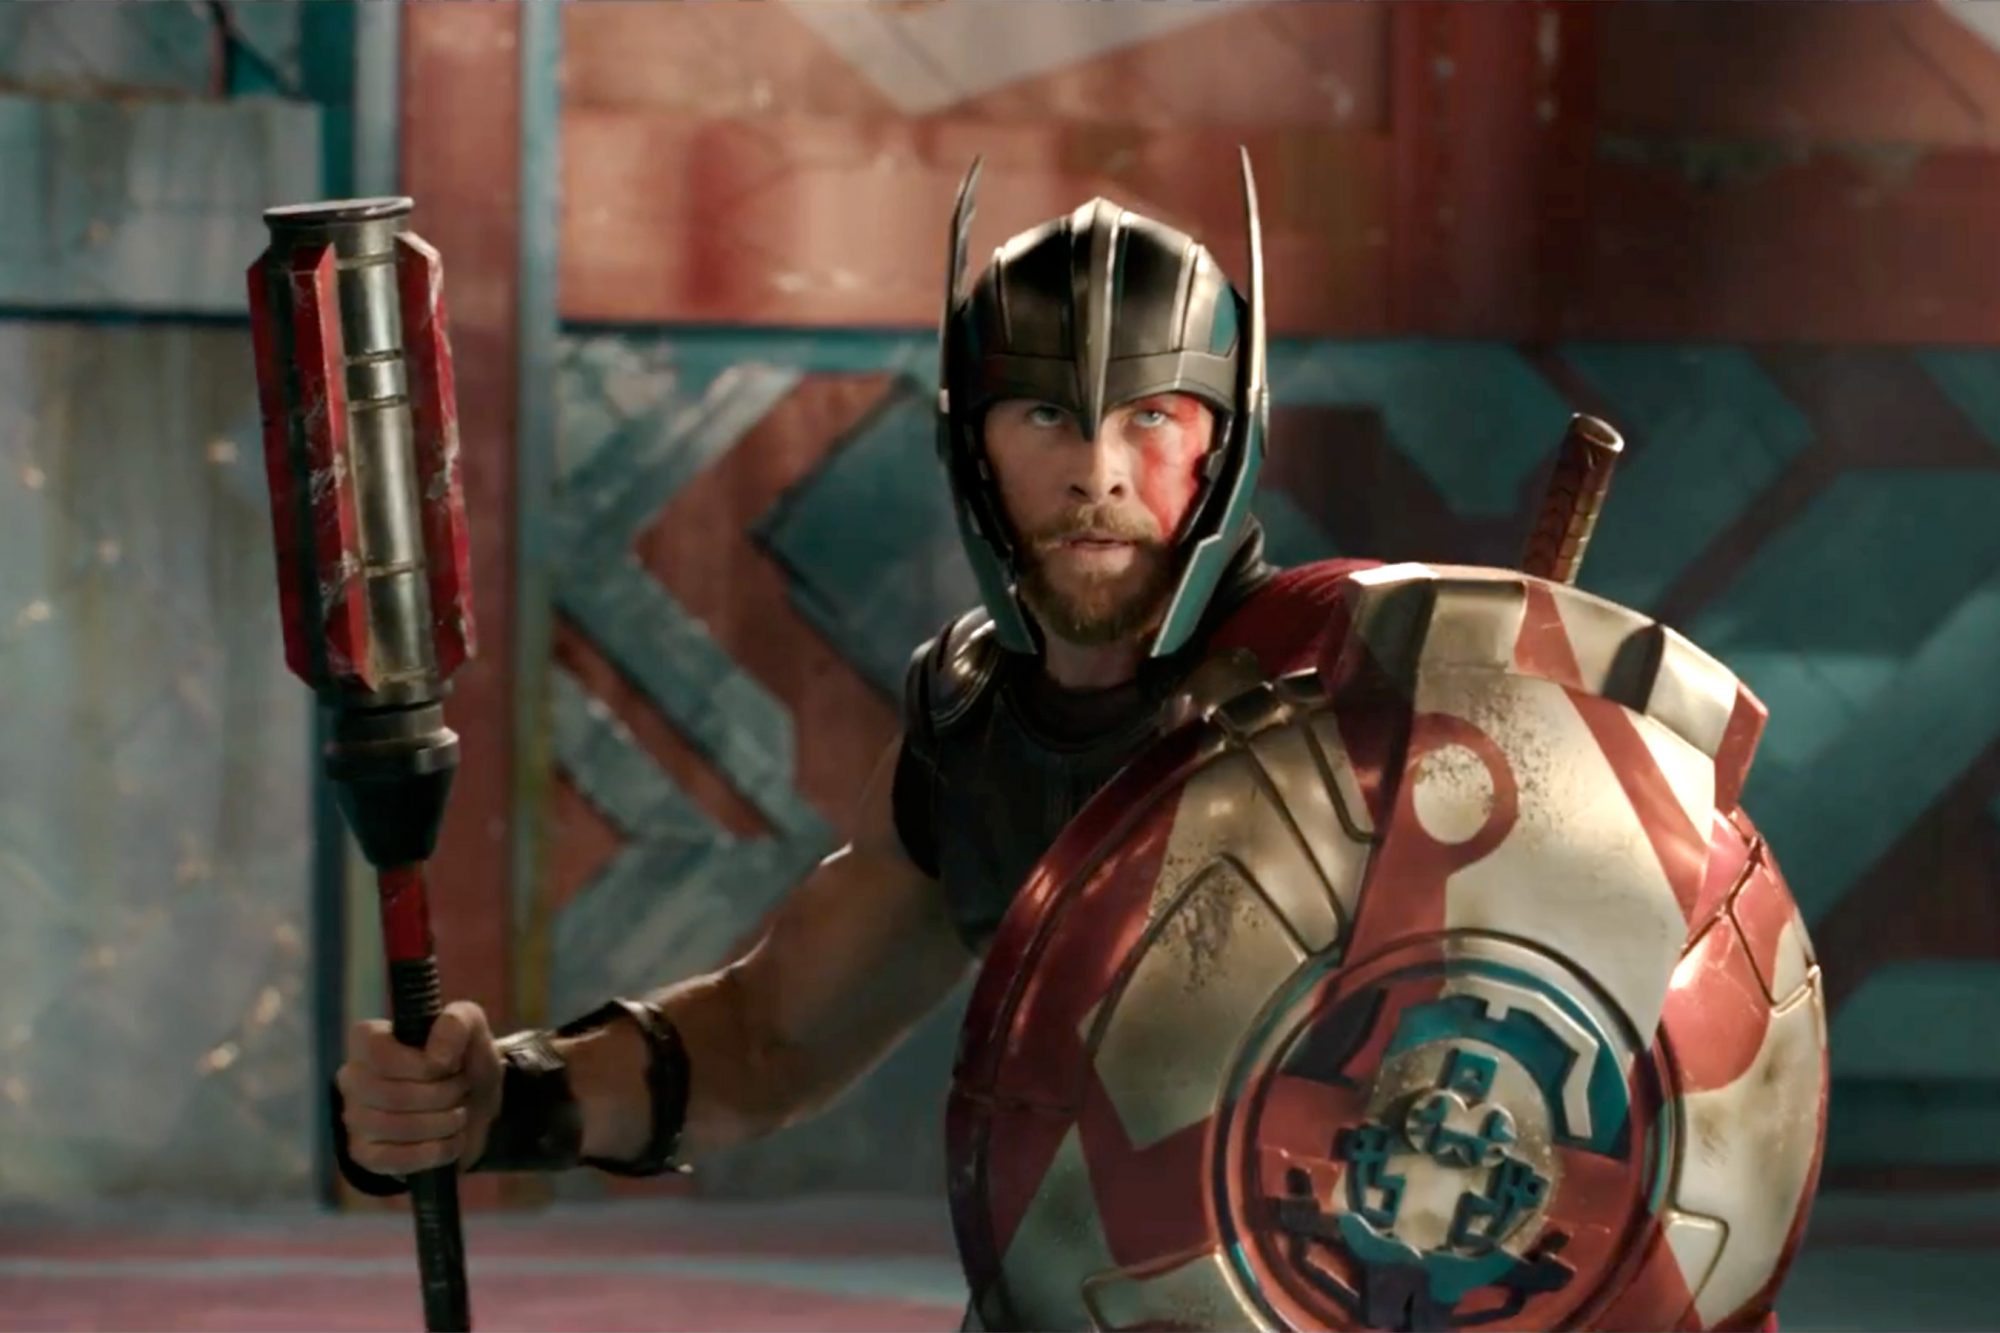 Thor Ragnarok trailer screen grab Credit: Marvel